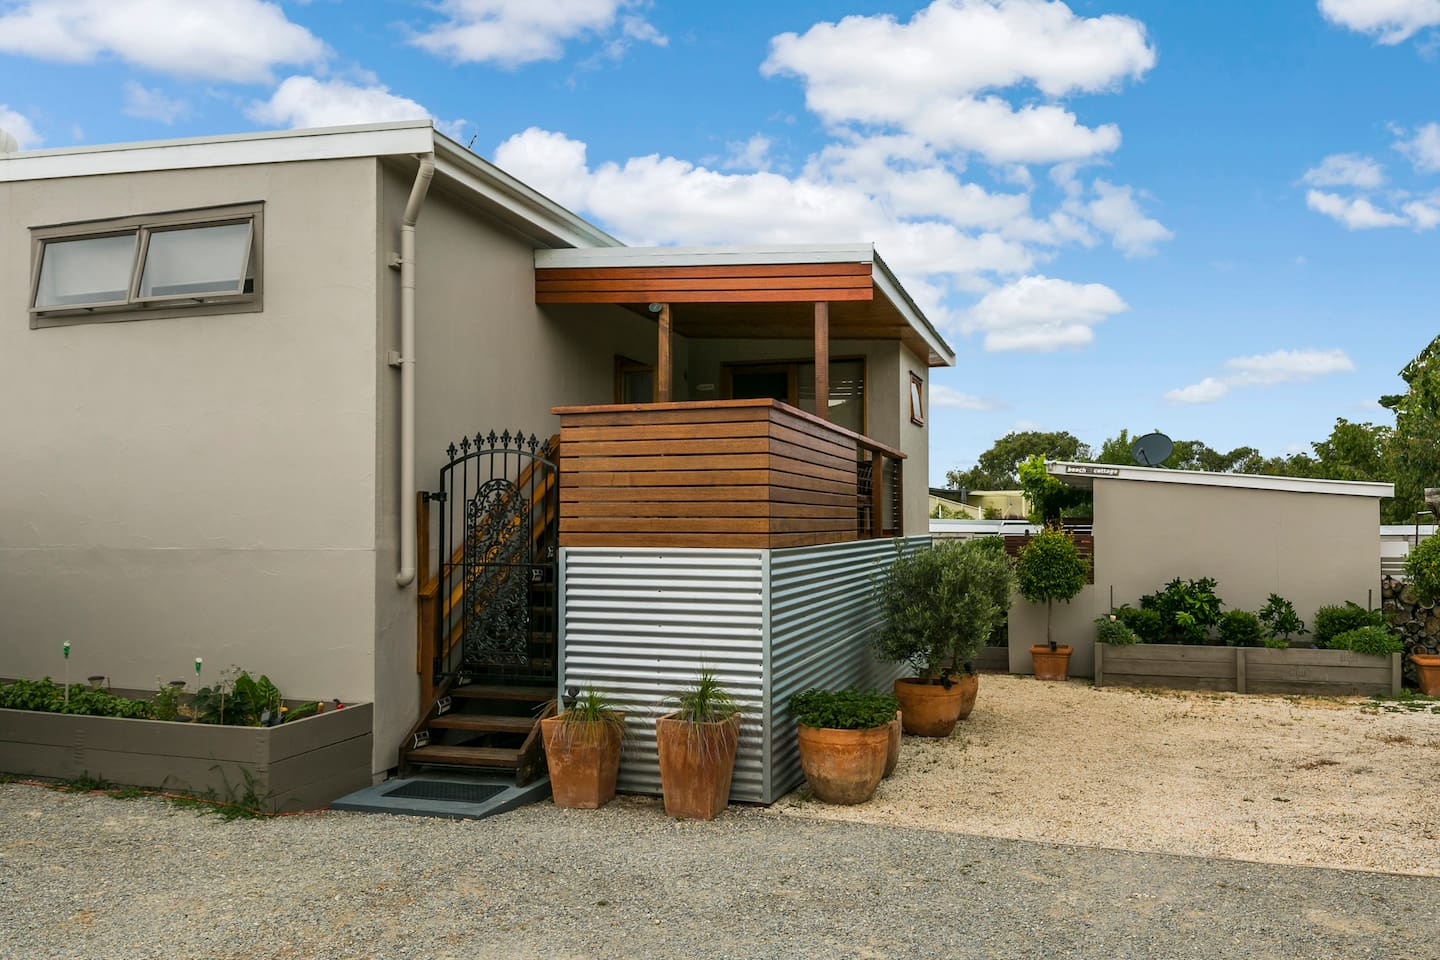 786 Newport Road Beach Haven Anglesea Point Roadknight Beach Houses For Rent In